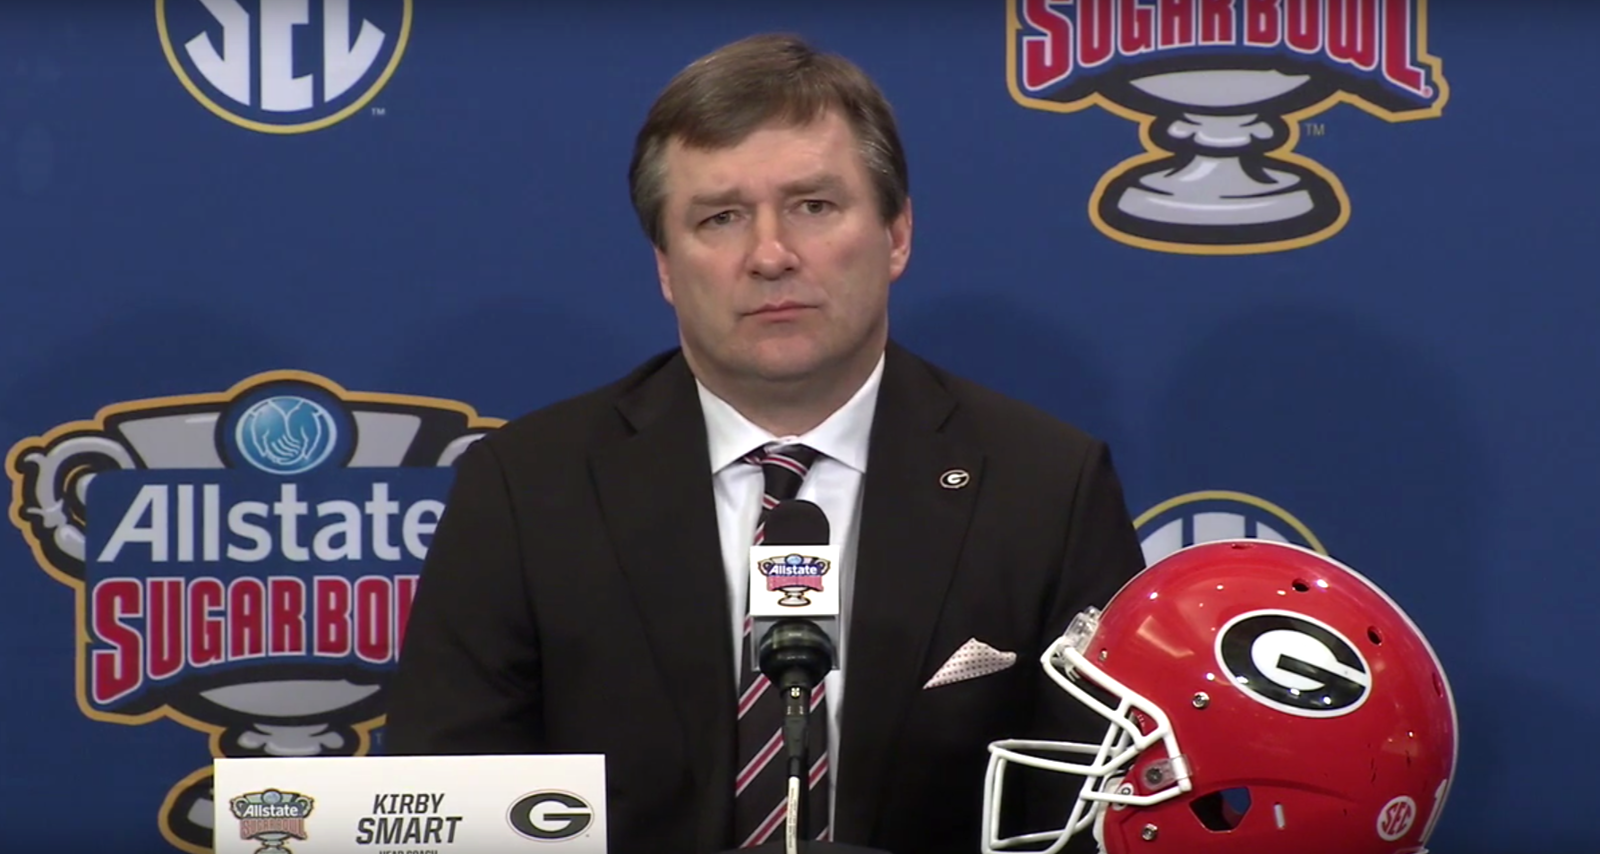 UGA head coach Kirby Smart during the Sugar Bowl pregame press conference on Tuesday, December 31, 2019